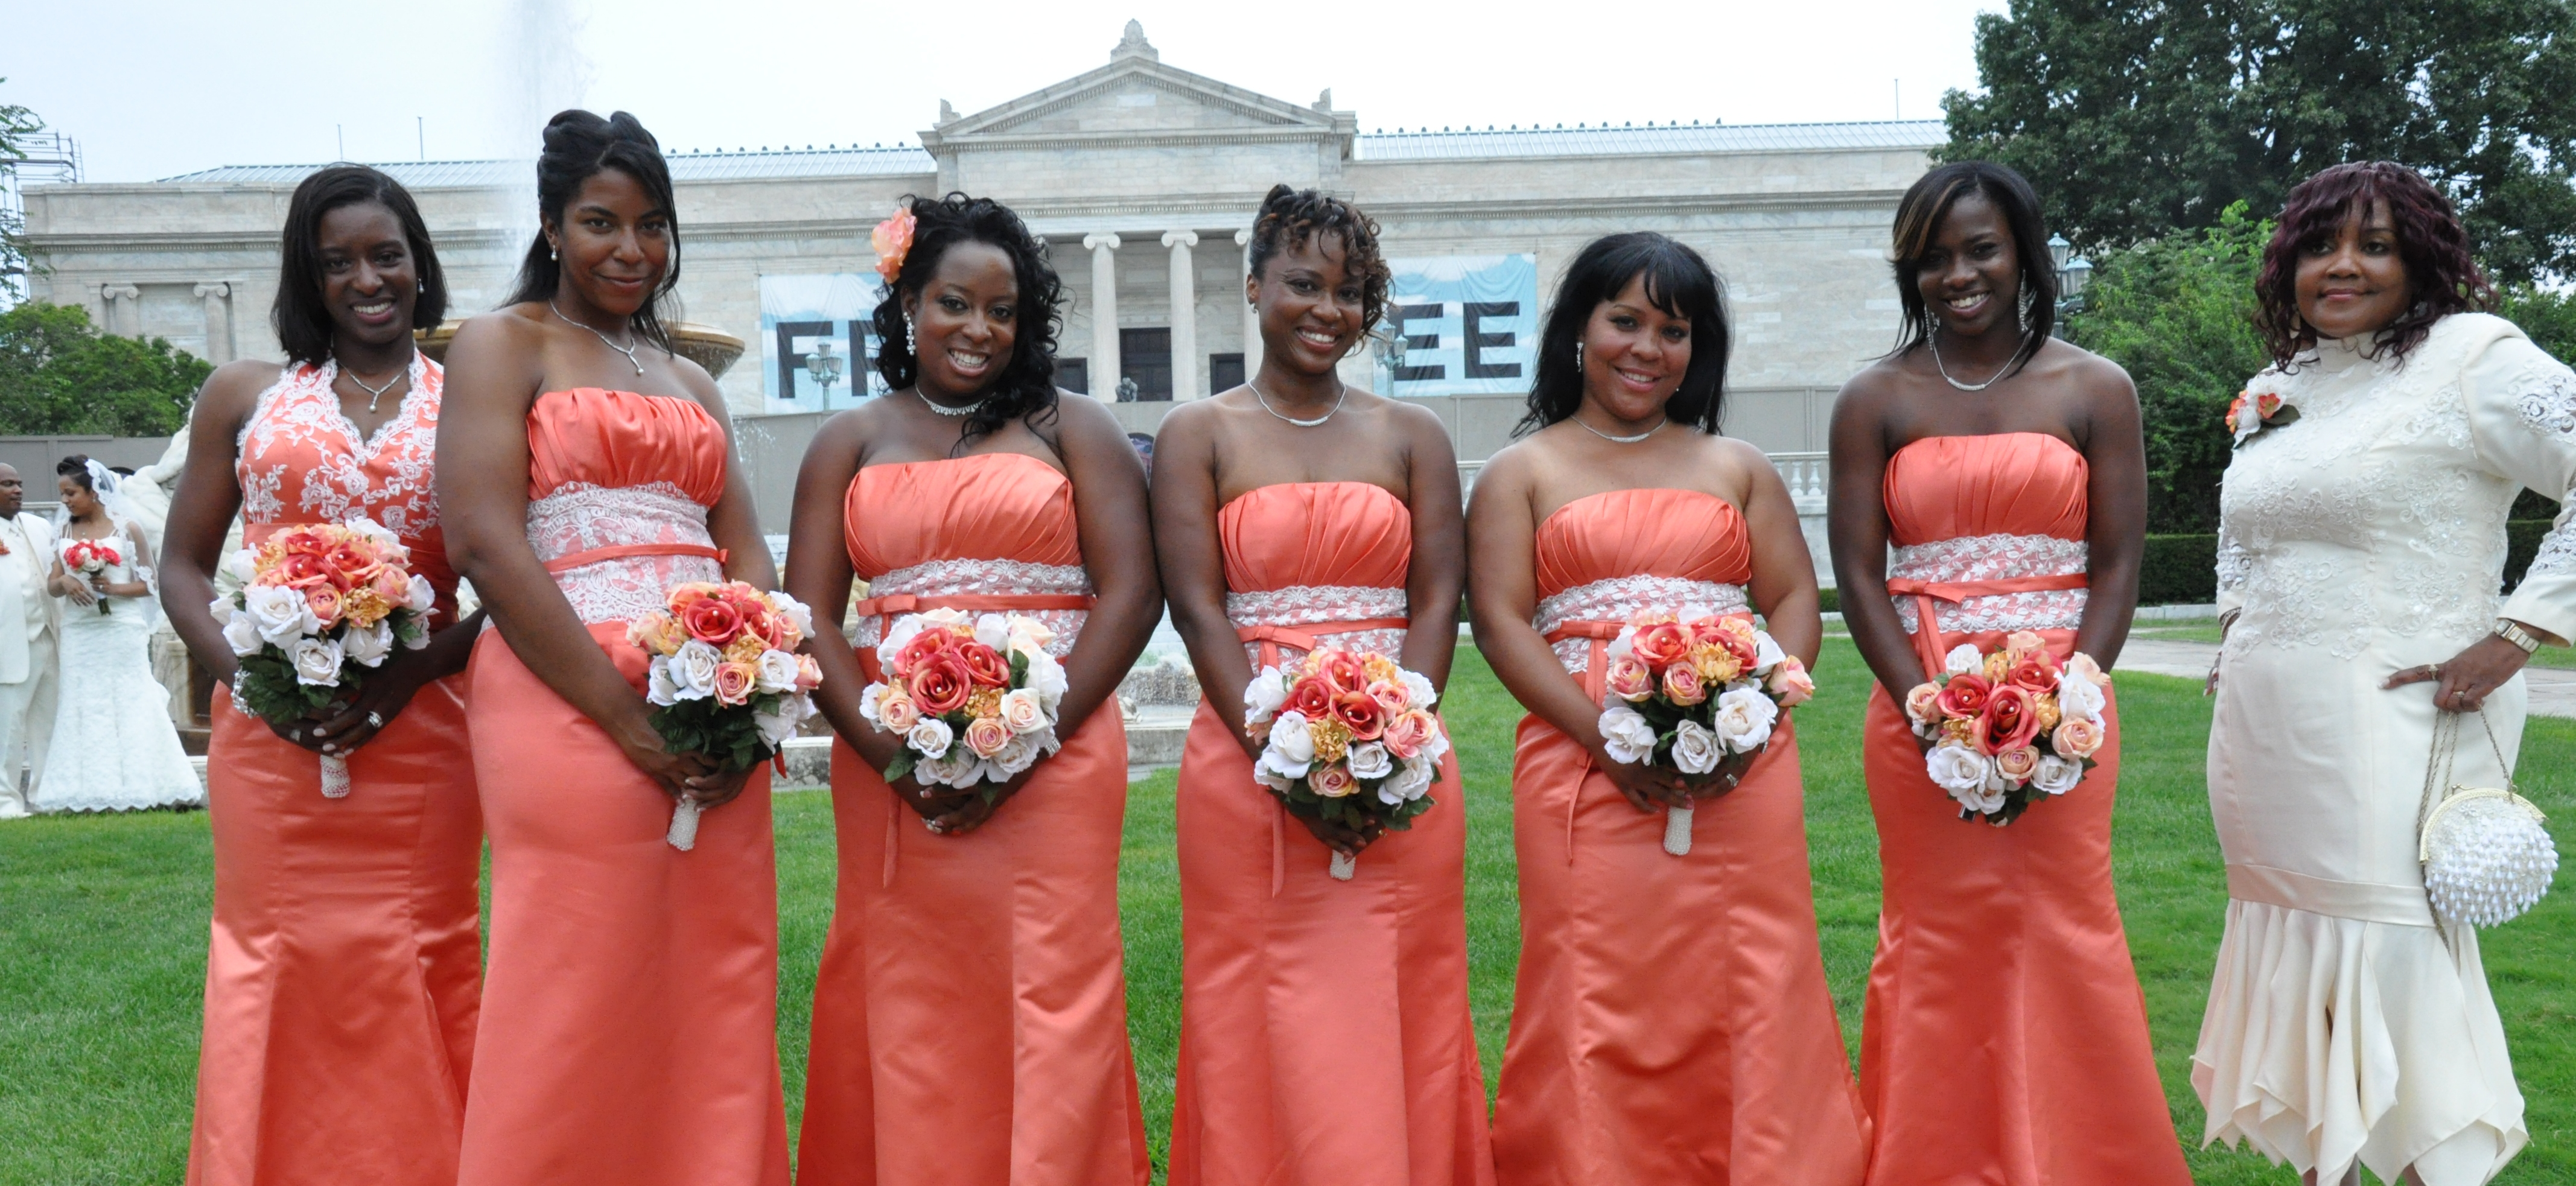 Persimmon bridesmaid dresses